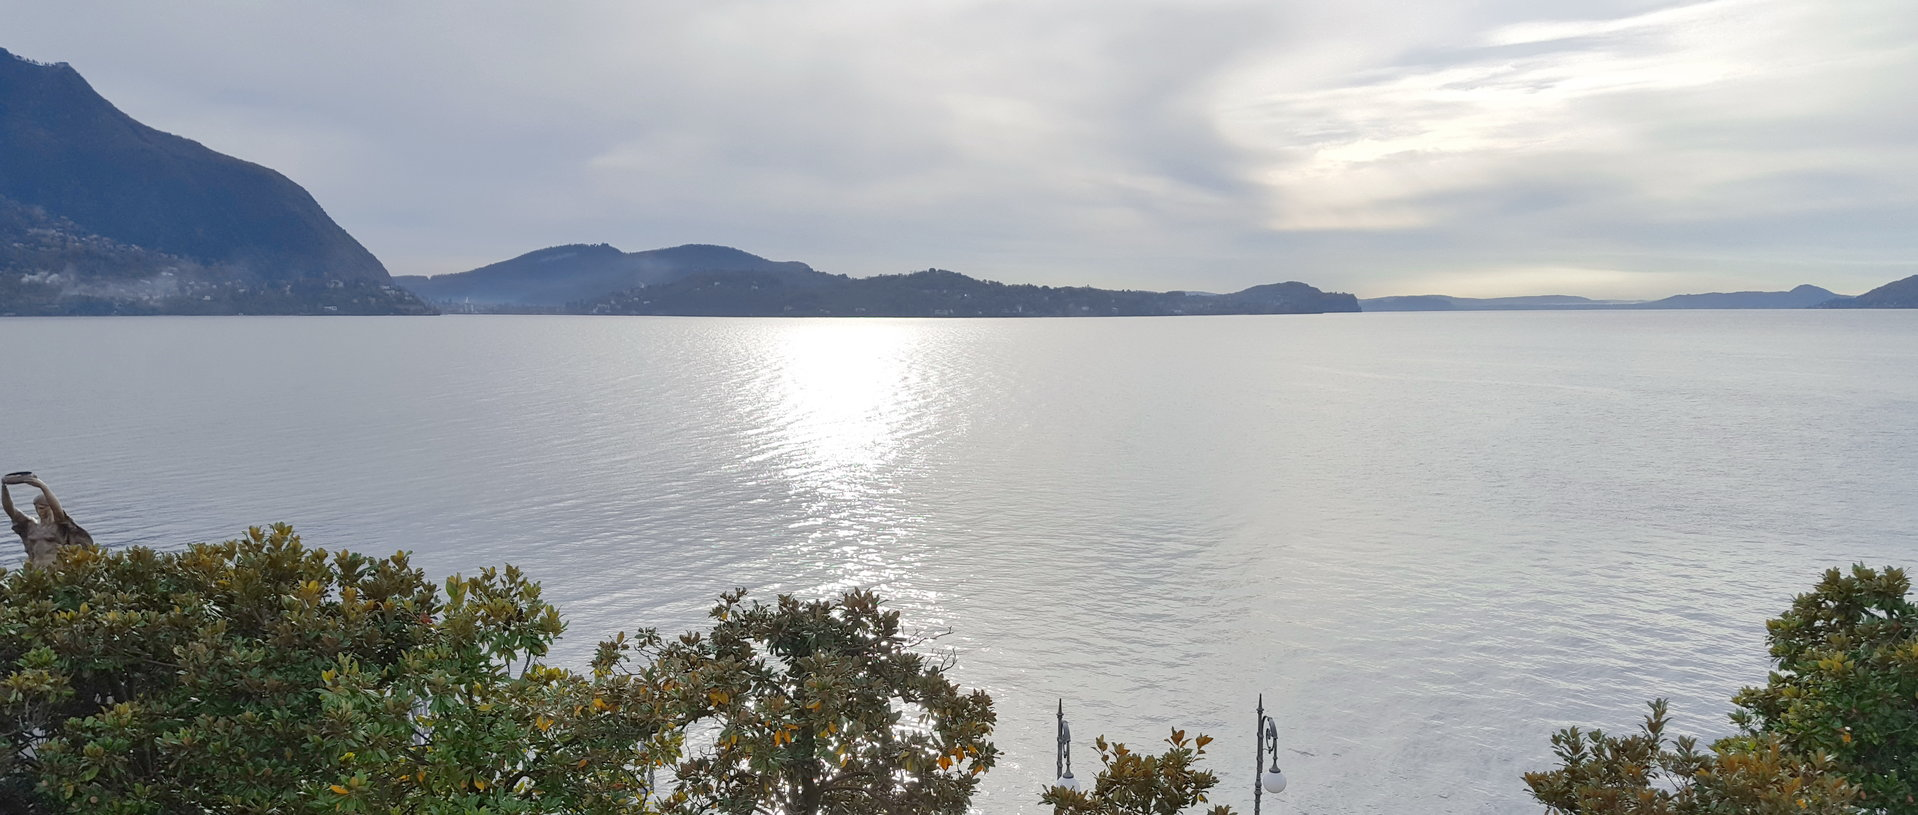 Renovated apartment for sale in Verbania in front of Lake Maggiore - view